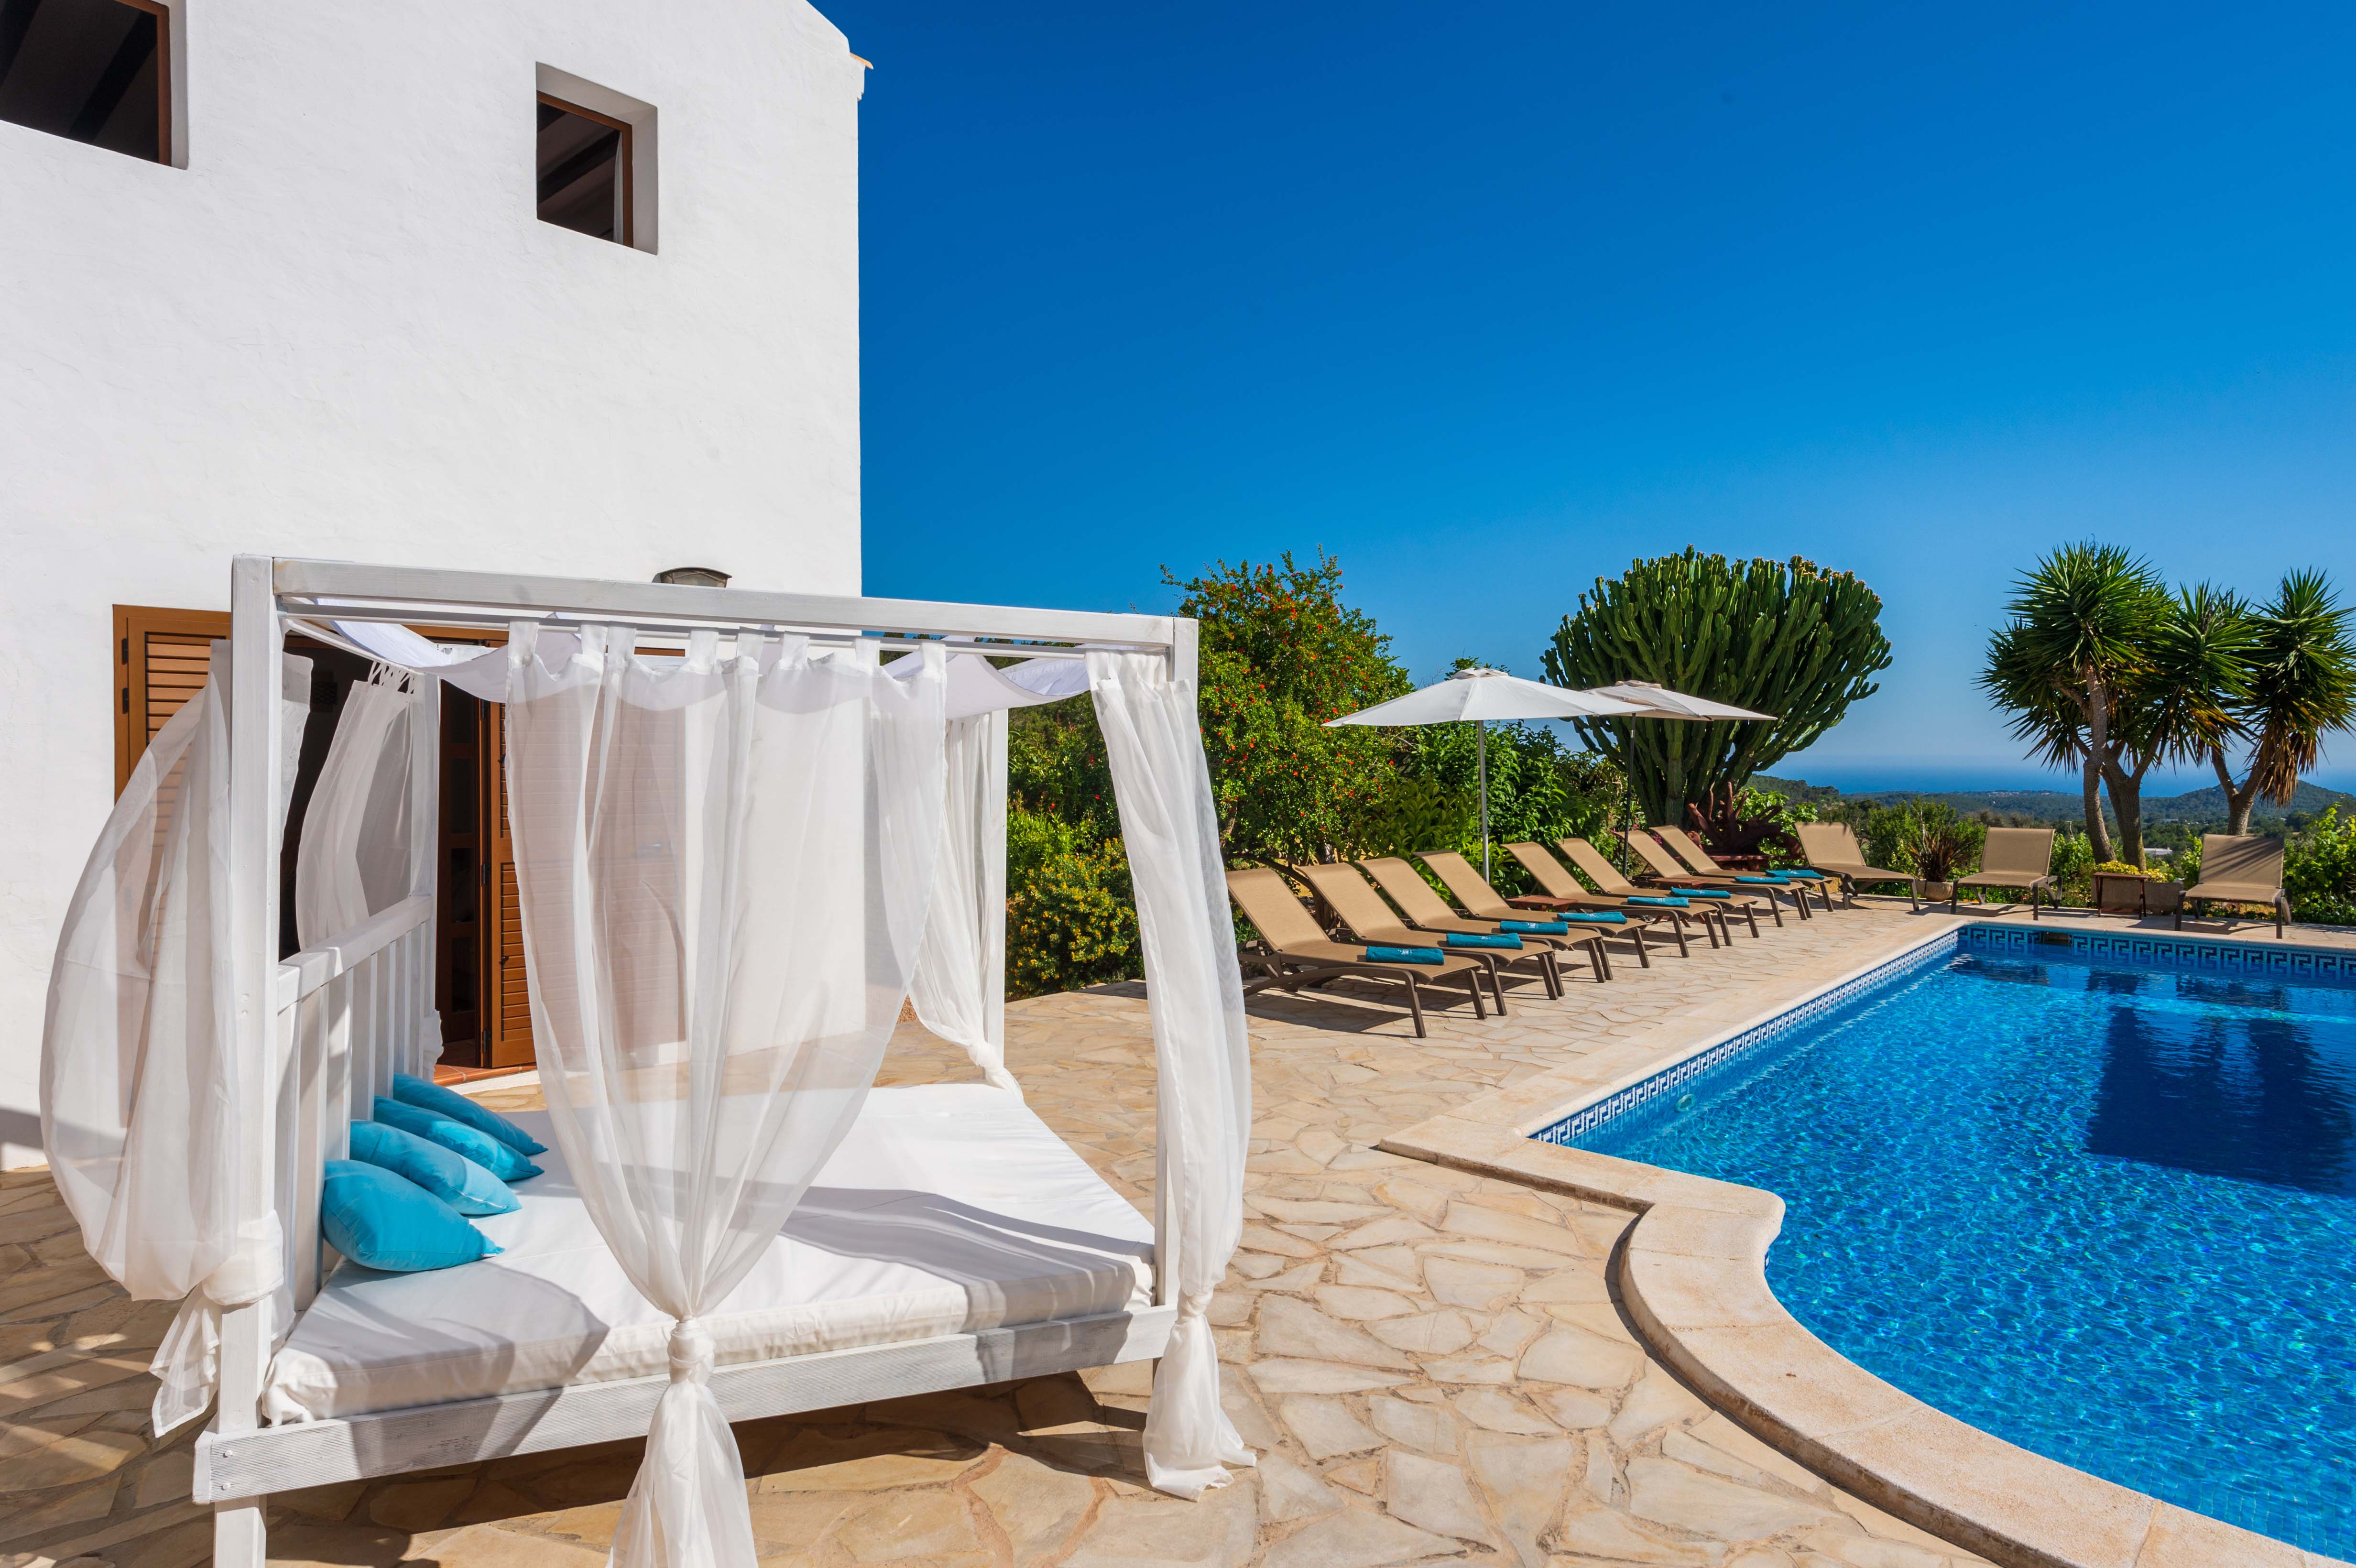 luxury villa rental, Spain, ESPIBI 1806